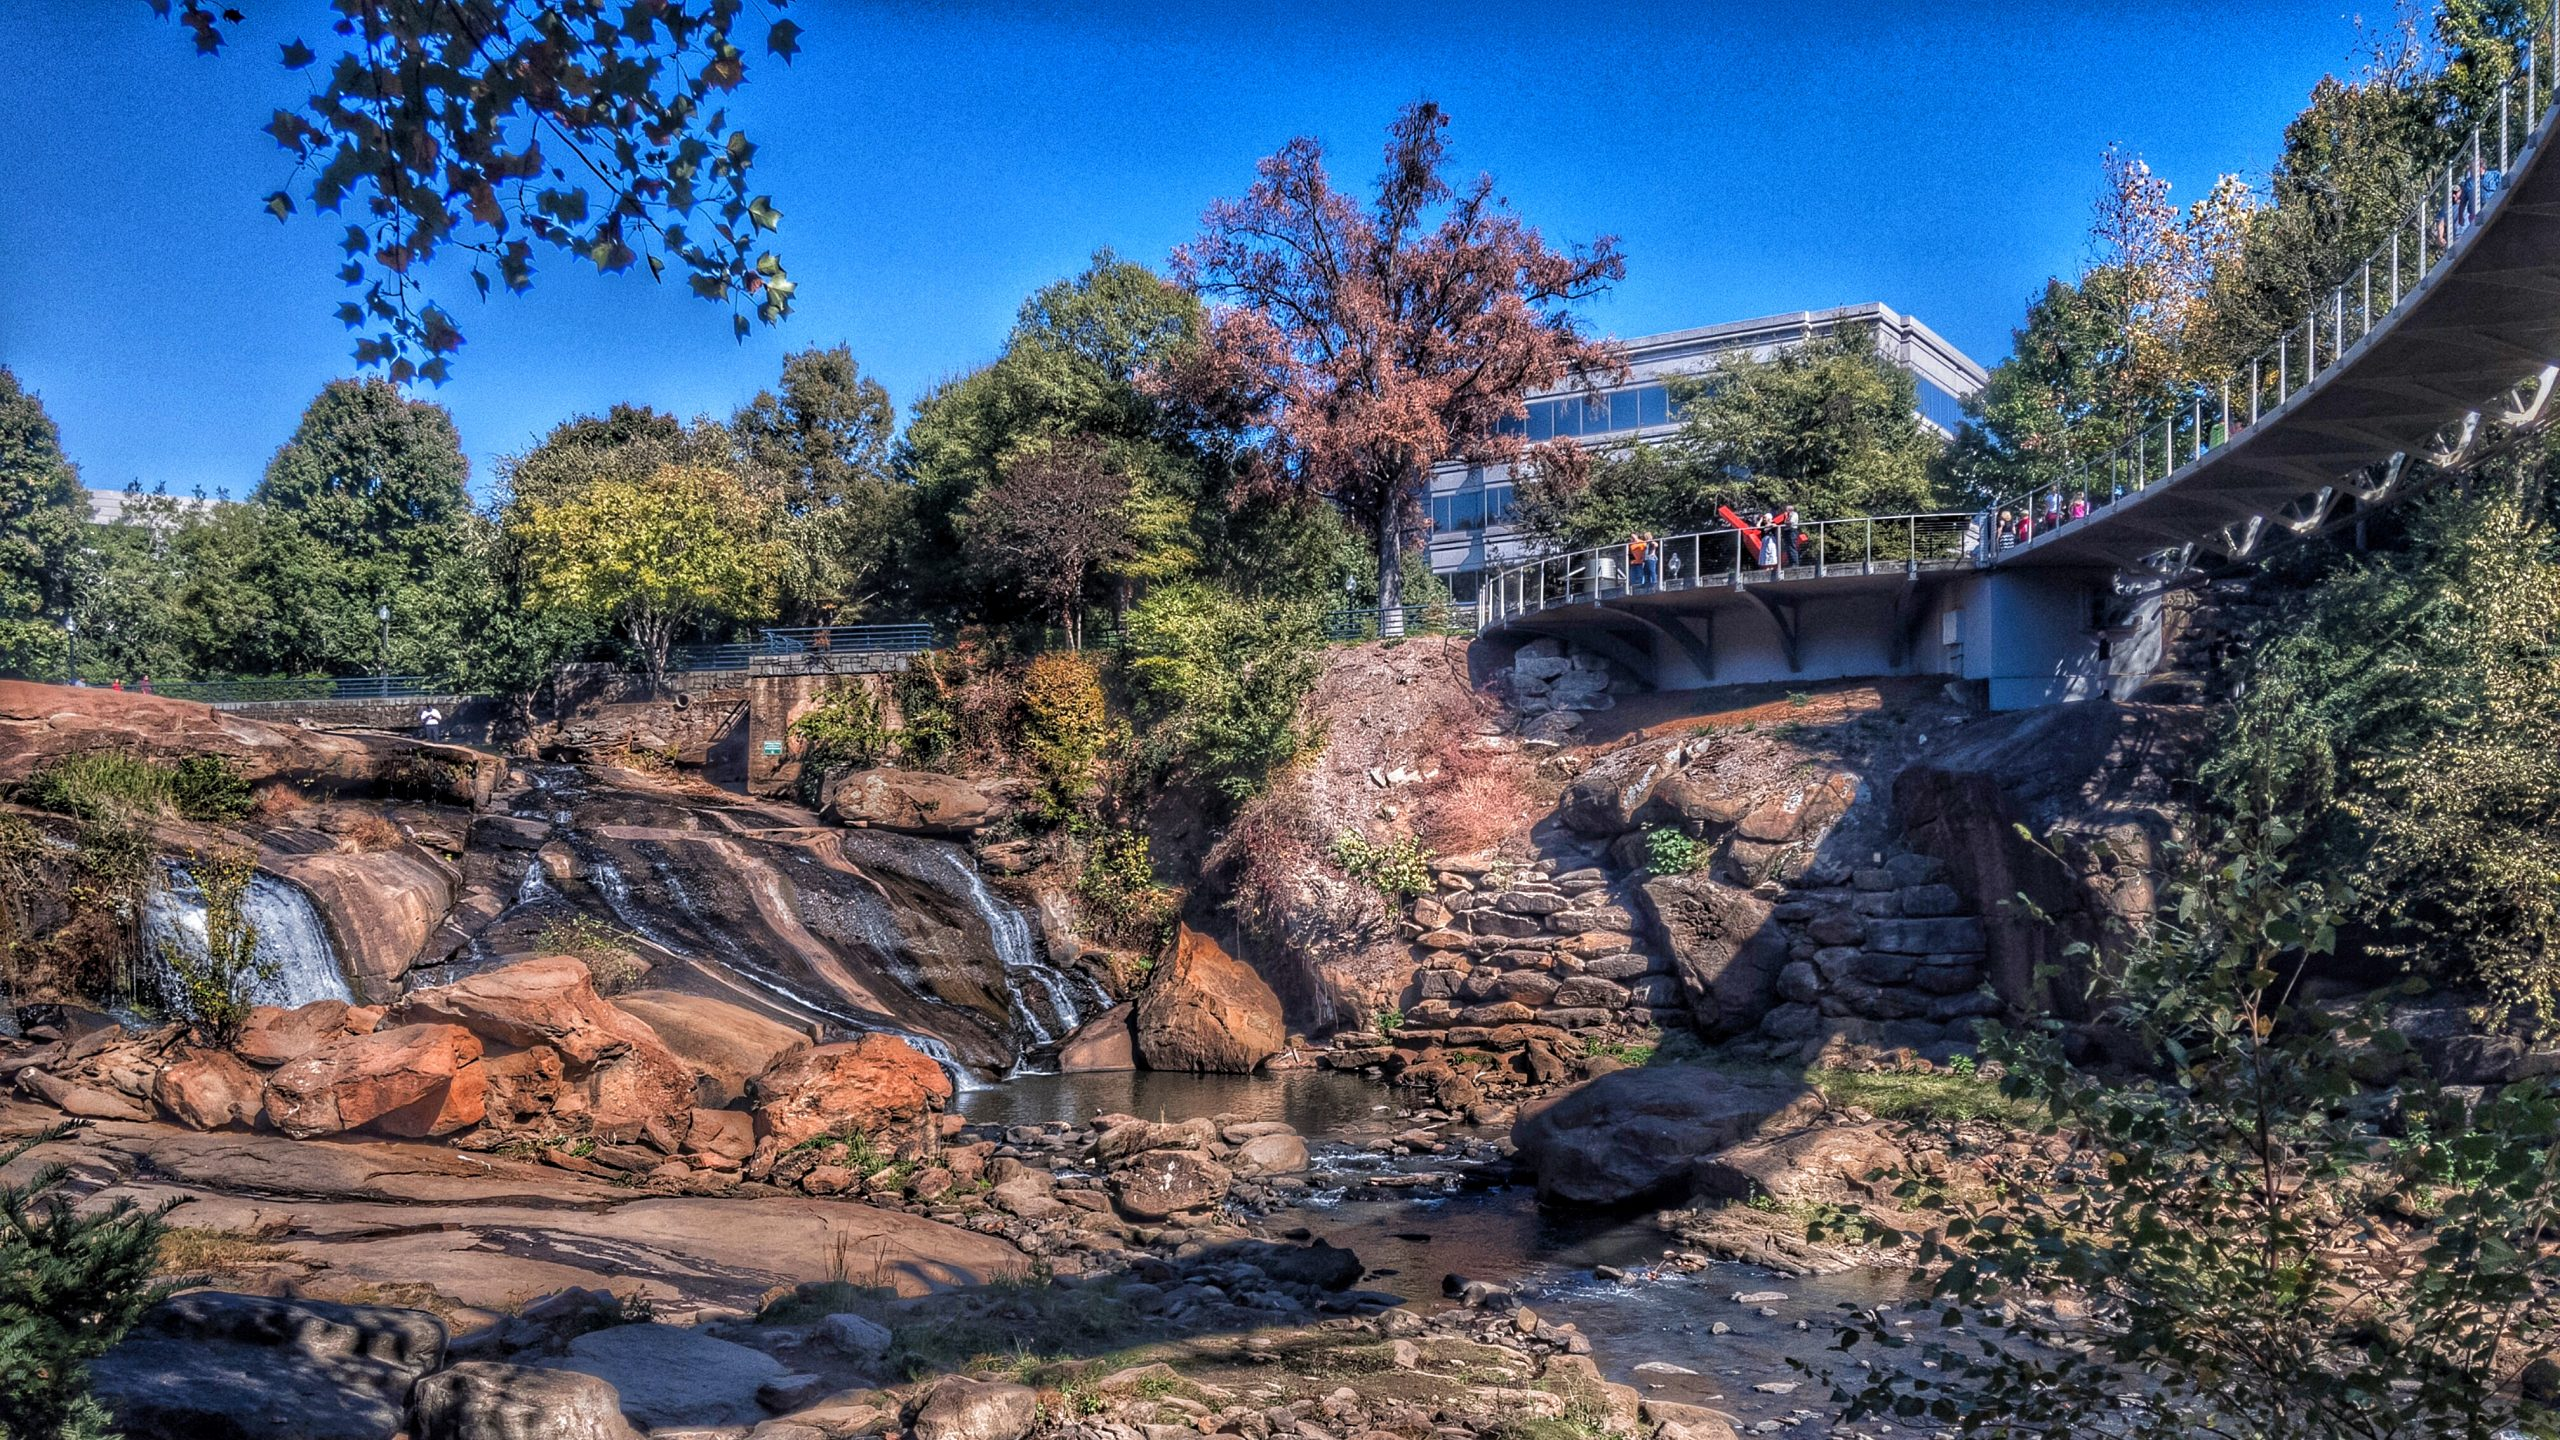 Reedy River Falls, Greenville, South Carolina